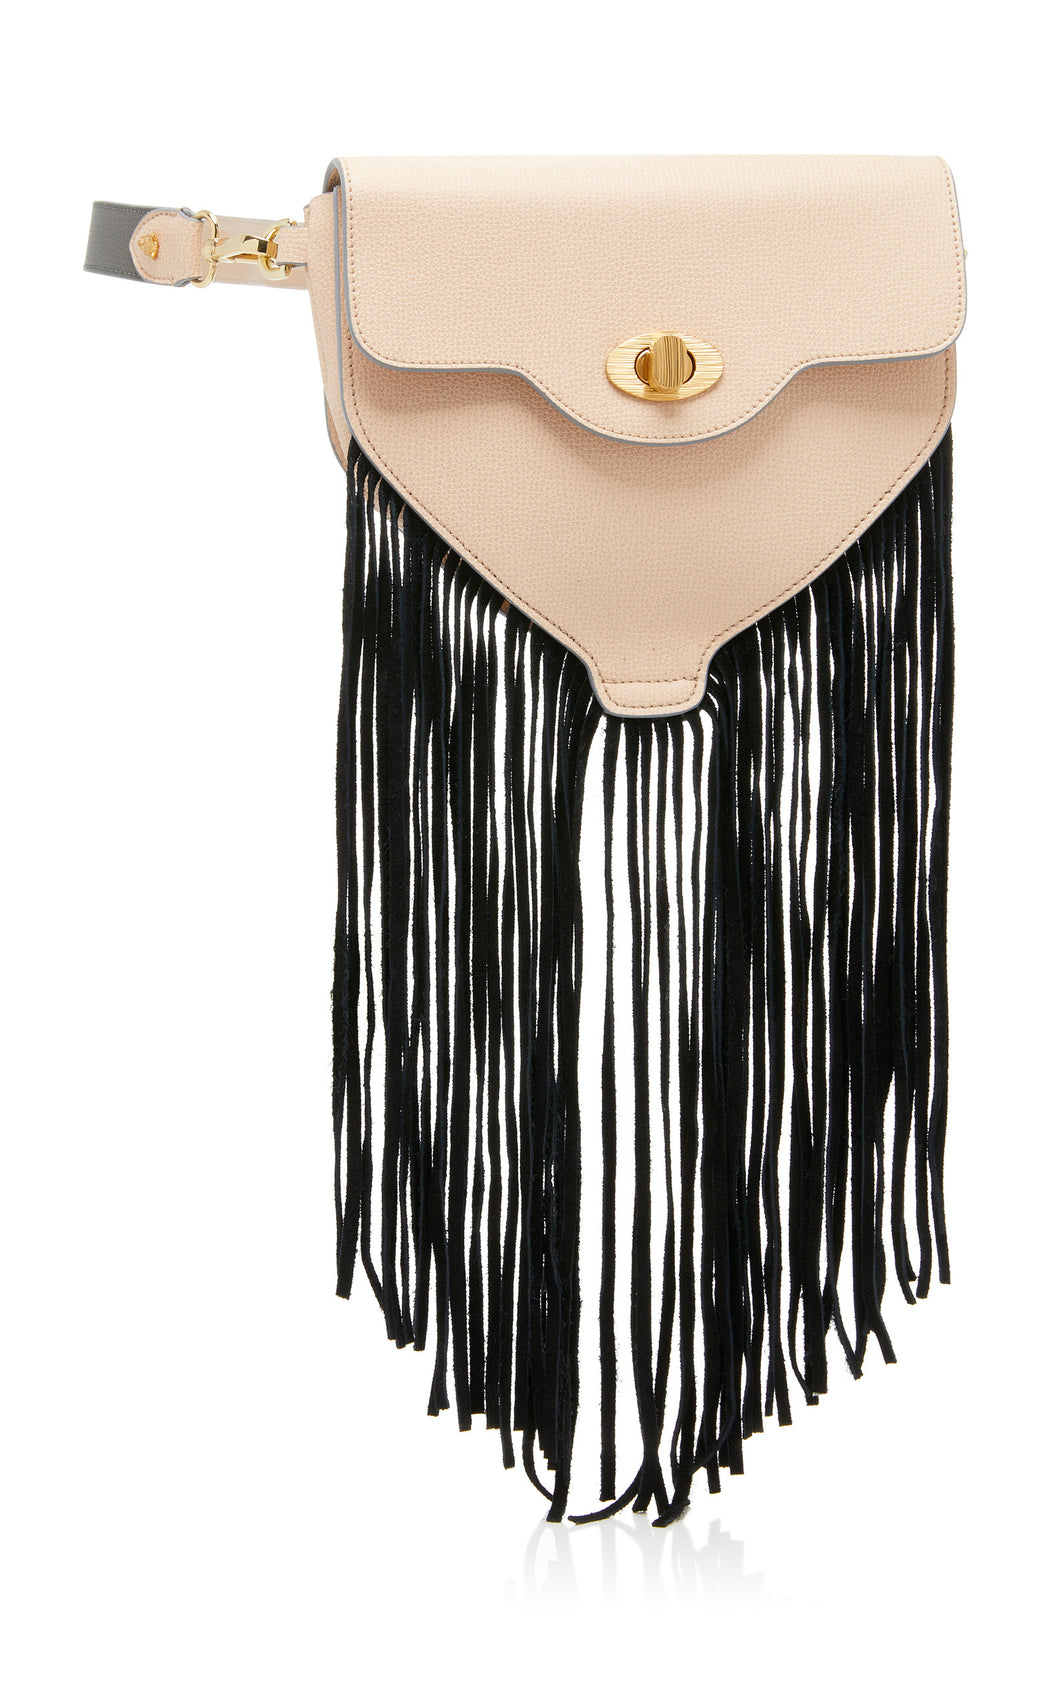 "The ultimate ""IT"" bag for convenience. The Hippie in nude saffiano leather and black suede fringe can be worn as a luxury belt bag, over the shoulder, or as a luxury leather crossbody. This fun little bag works for every situation--from running errands to music festivals. Roomy interior with fun fringe, contrast edges and nickel turnlock details."